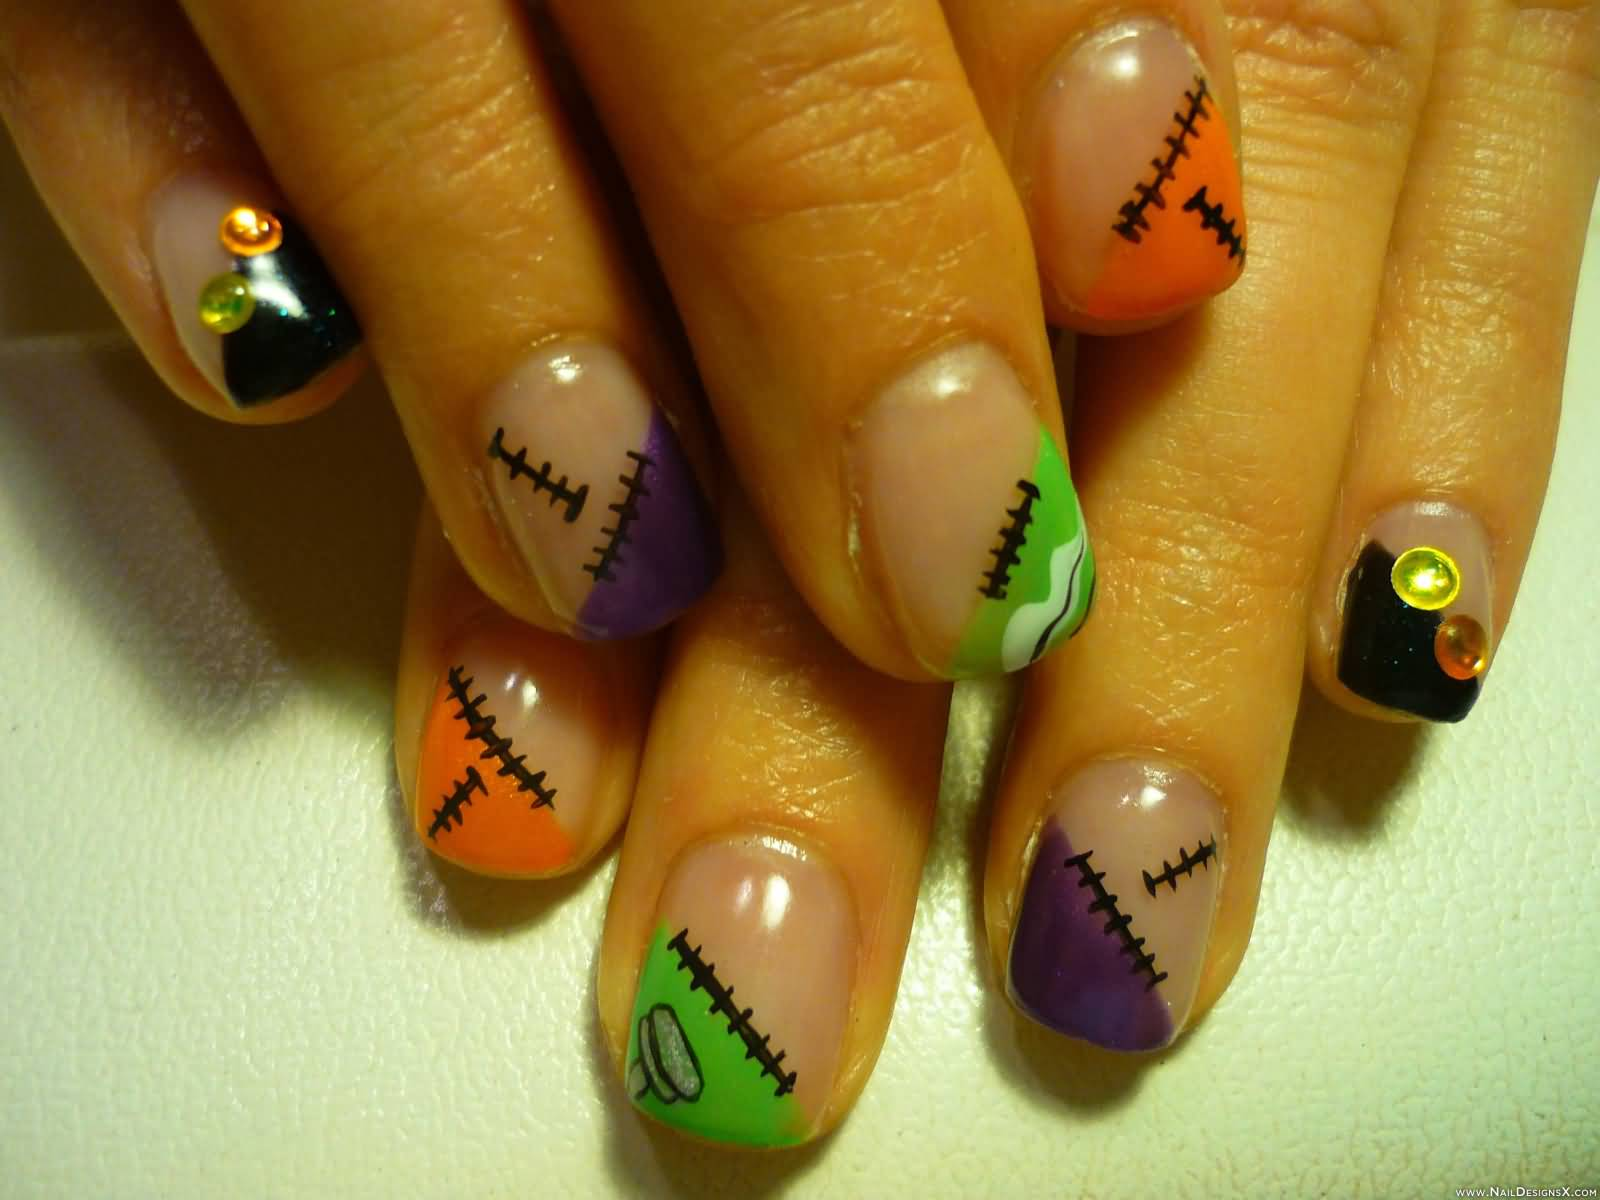 55 latest halloween nail art designs stitches design halloween nail art prinsesfo Gallery